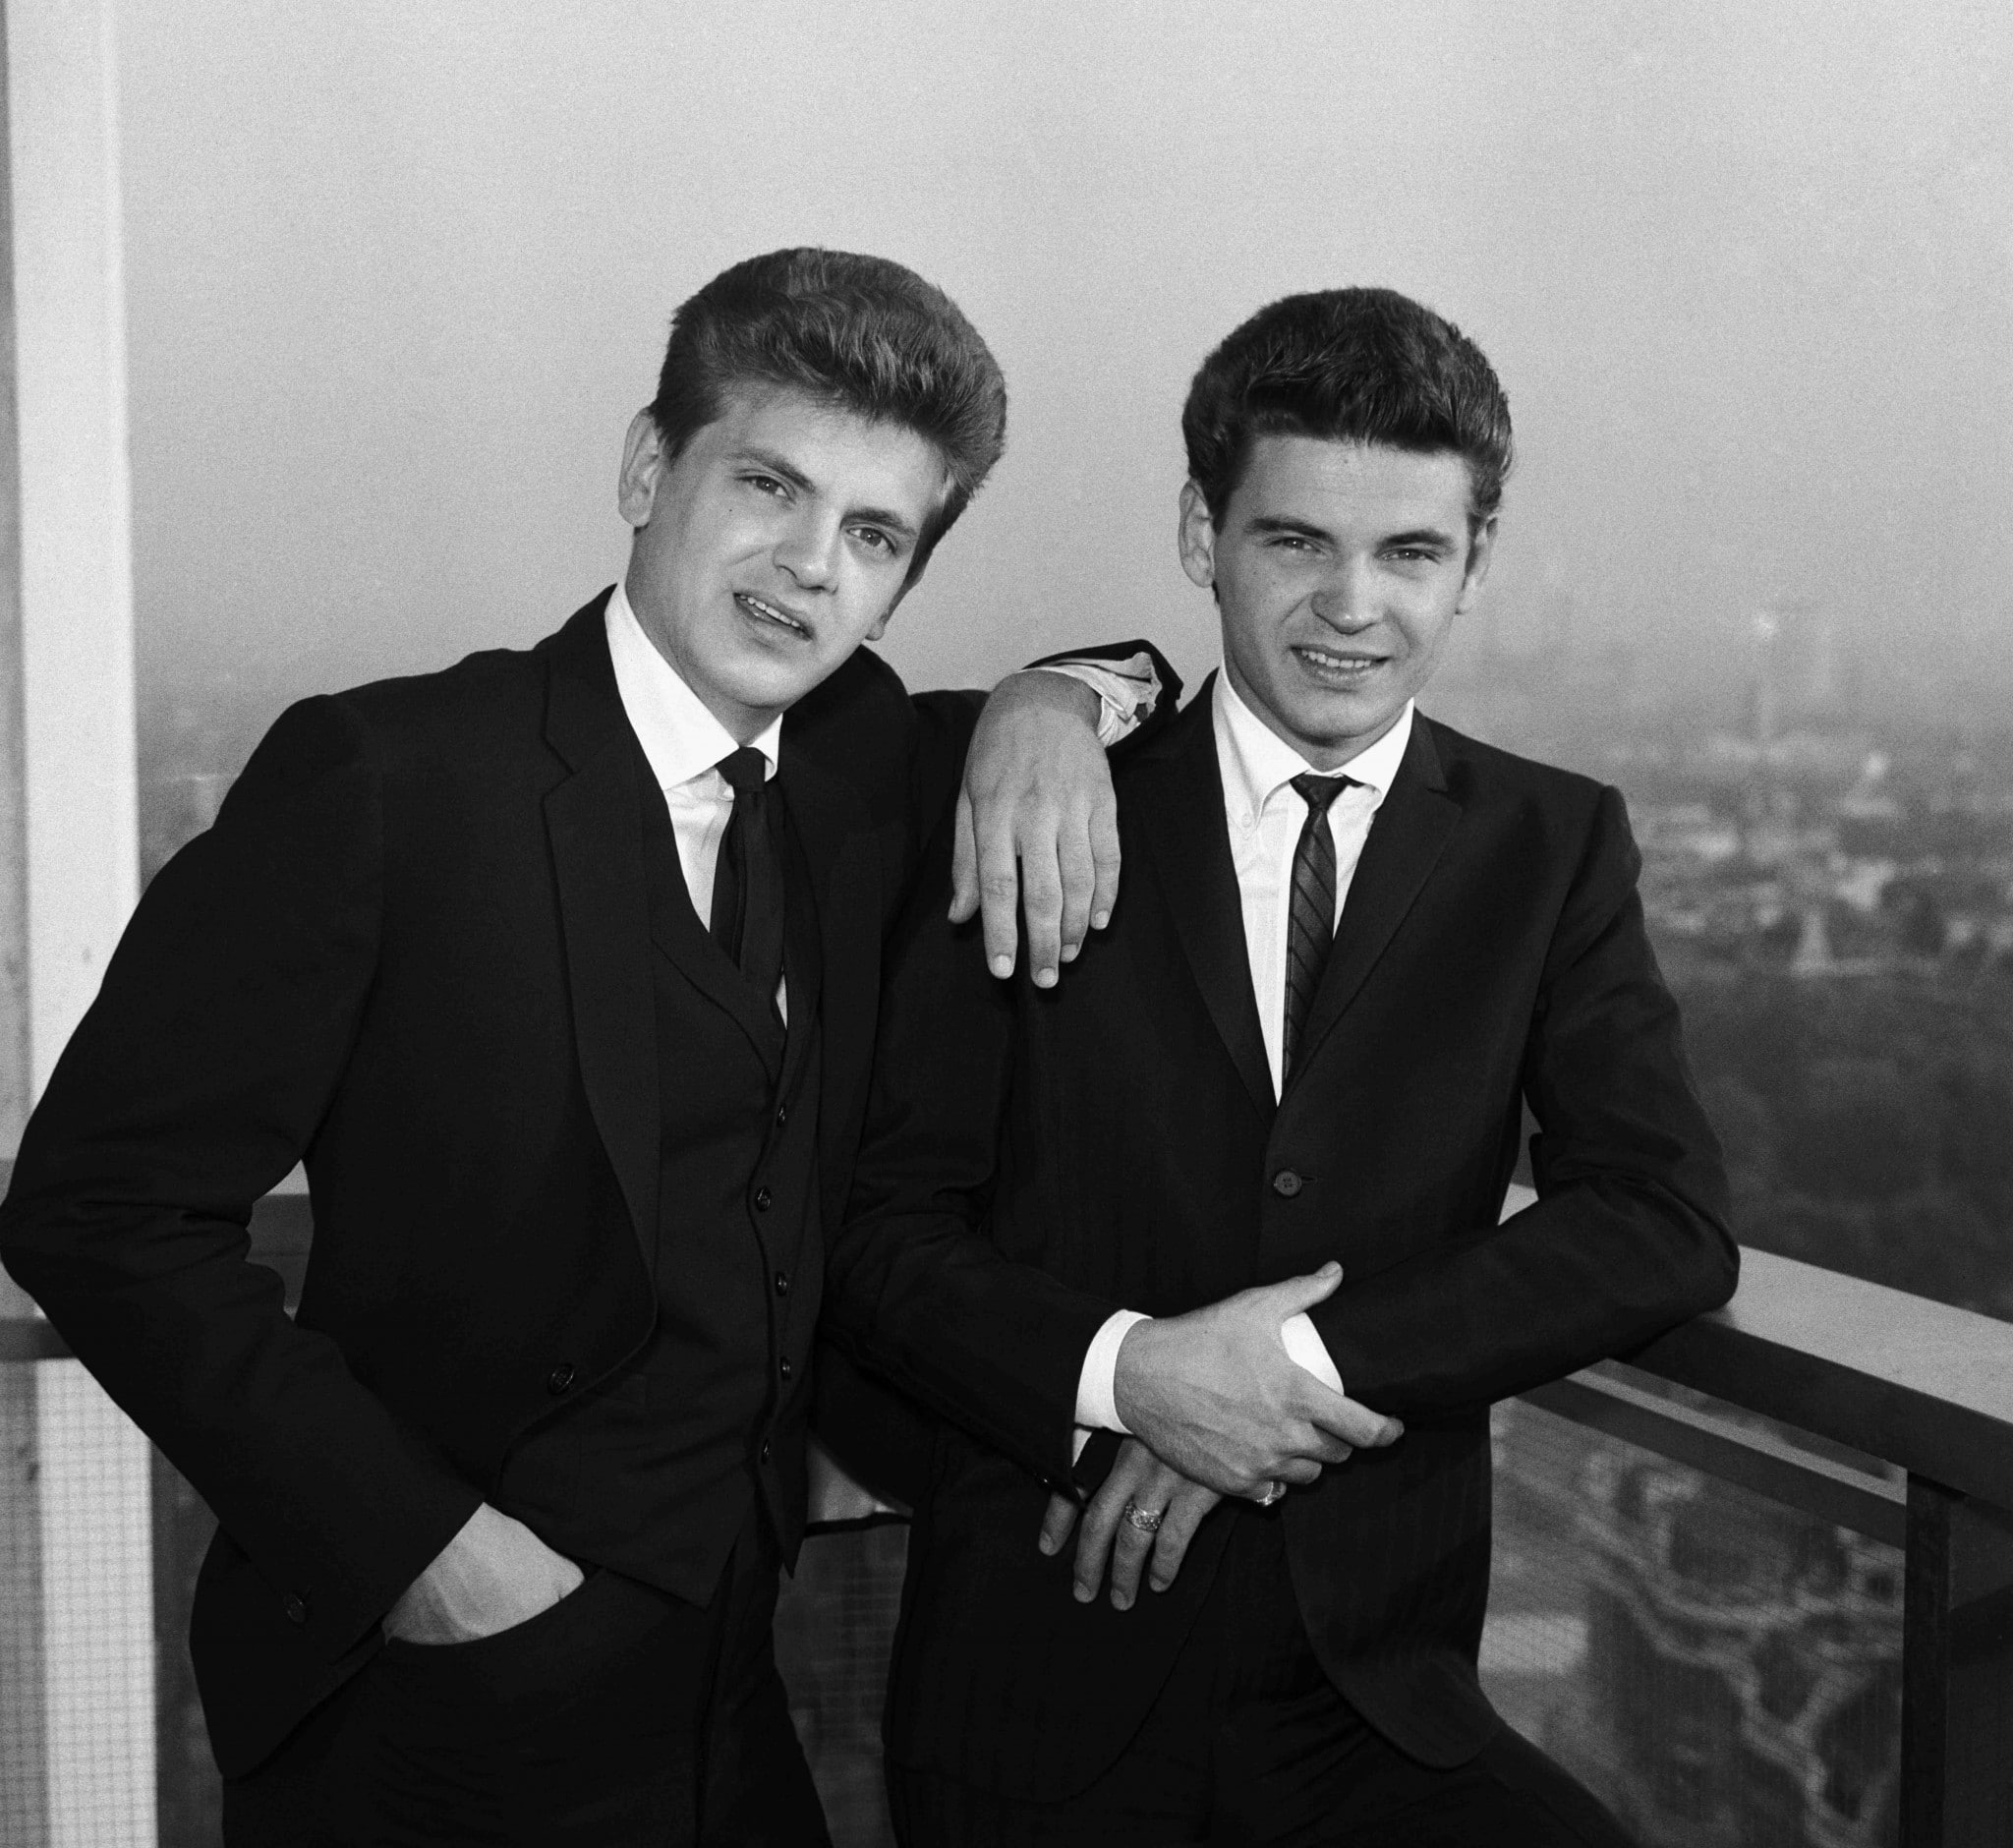 everly-brothers-bw